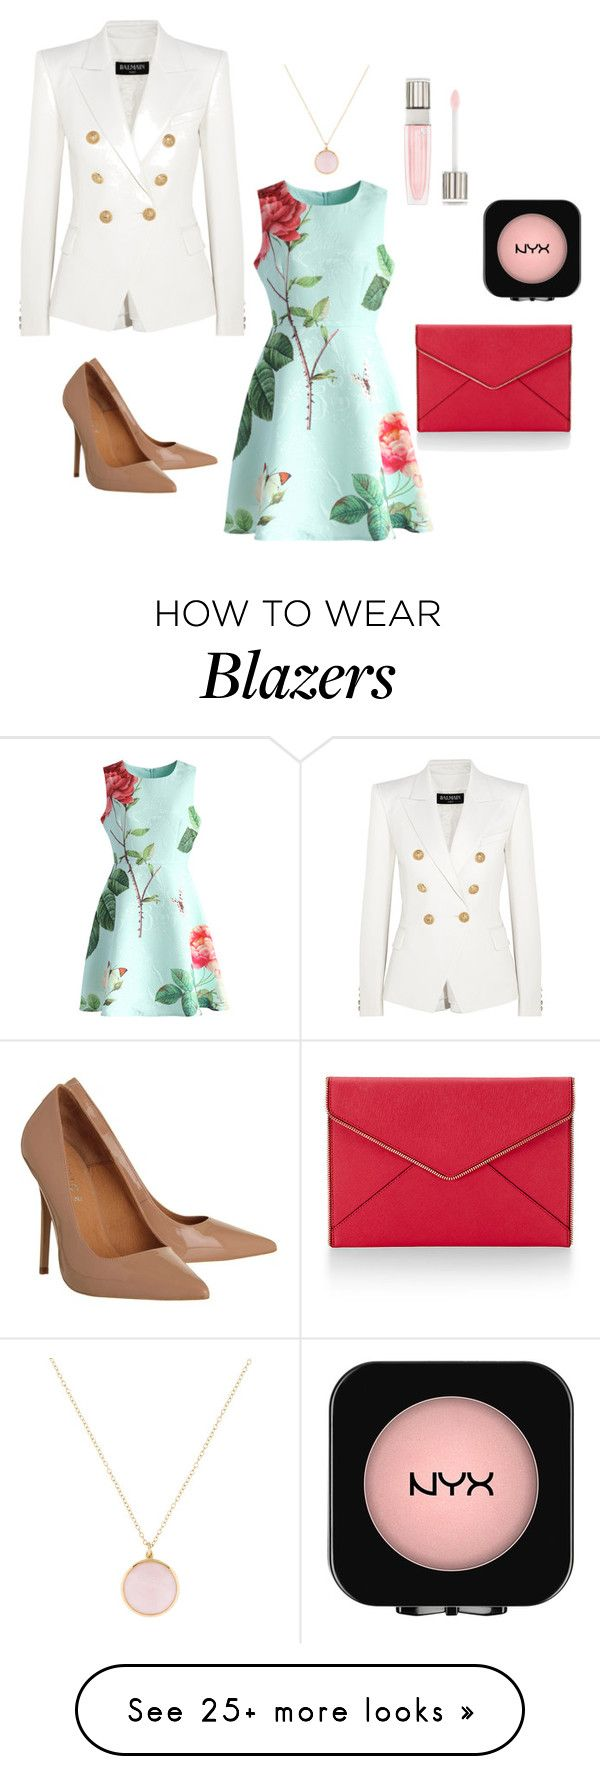 """""""military blazer"""" by angie-l88 on Polyvore featuring Balmain, Chicwish, Office, Rebecca Minkoff, Ippolita, Lancôme, NYX, Pumps and blazer"""